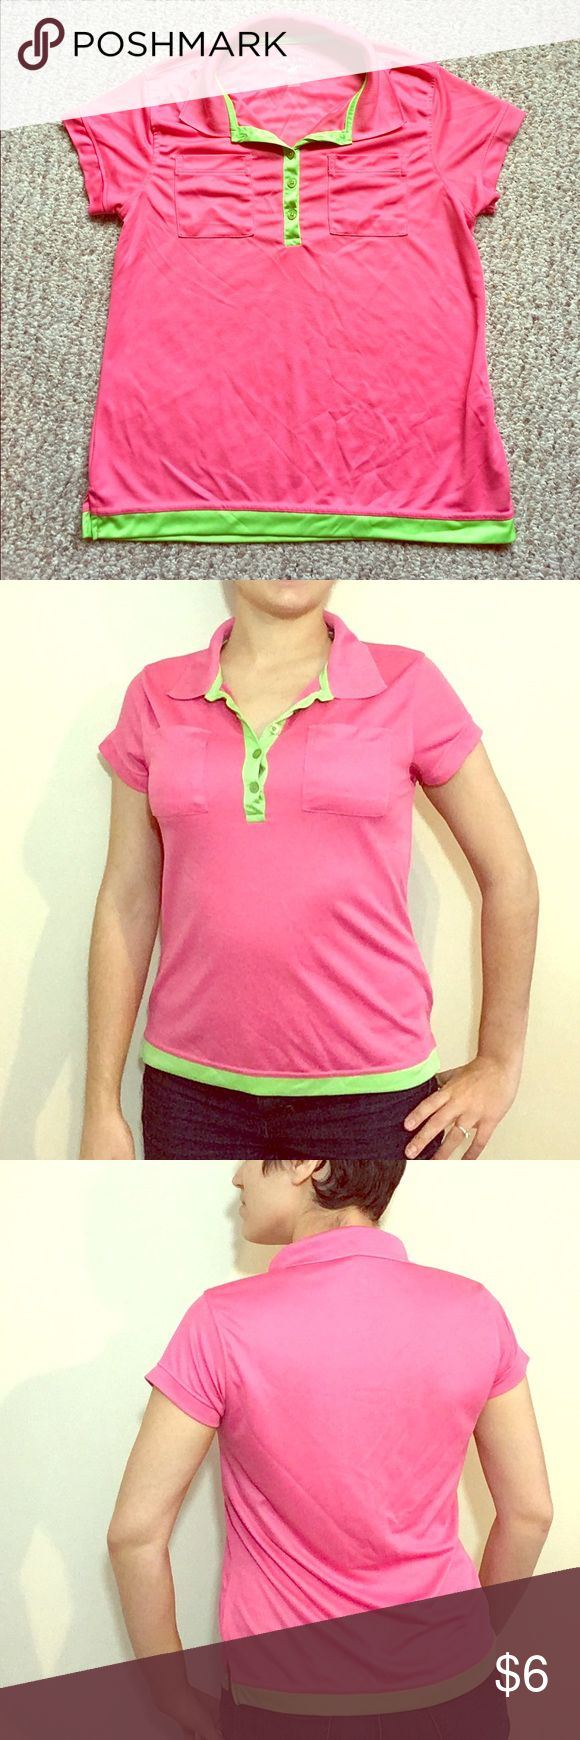 Beverly Hills Polo Club Golf Shirt 👚 Comfortable Beverly Hills Polo Golf shirt, great for sports or a casual day out. This shirt is a L but fits a Medium quite well. Bright pink with lime green buttons and trim with two breast pockets on the front. Item has only been worn once and is in excellent condition. Materials is 100% polyester. Will offer additional discounts when bundled 💕 beverly hills polo club Tops Tees - Short Sleeve